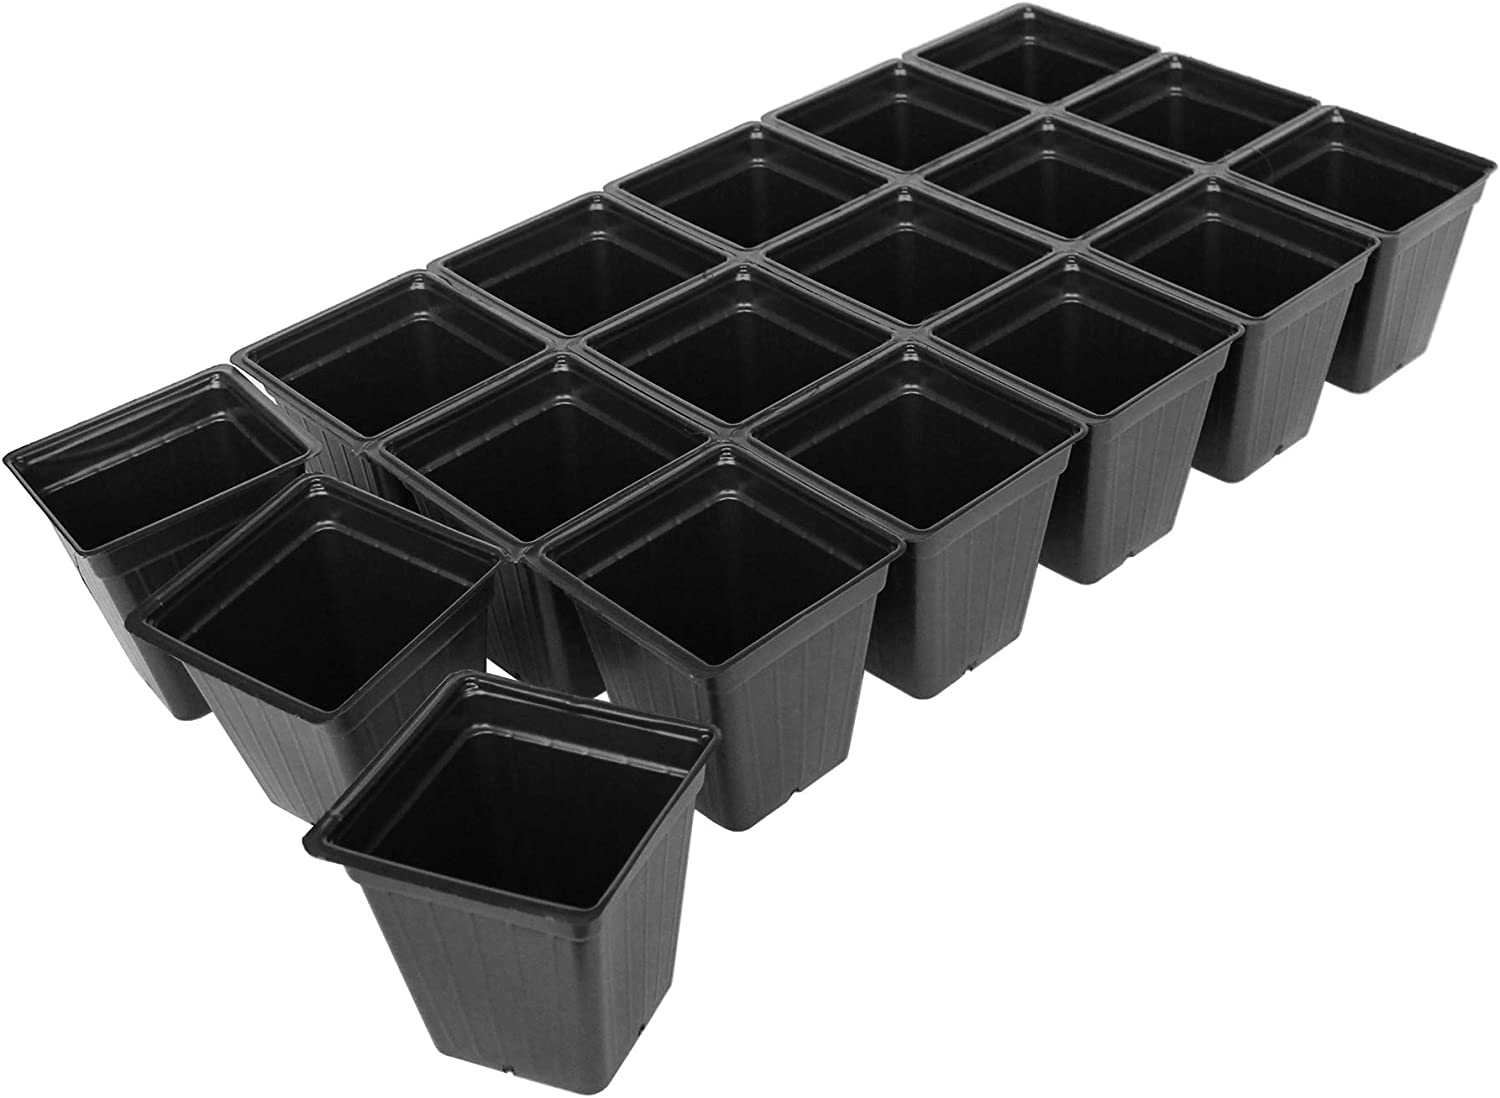 Handy Pantry Black Plastic Garden Tray Inserts - 20 Sheets of 18 Planting Pot Cells Each - 3x6 Configuration - Perforated - Nursery, Greenhouse, Gardening